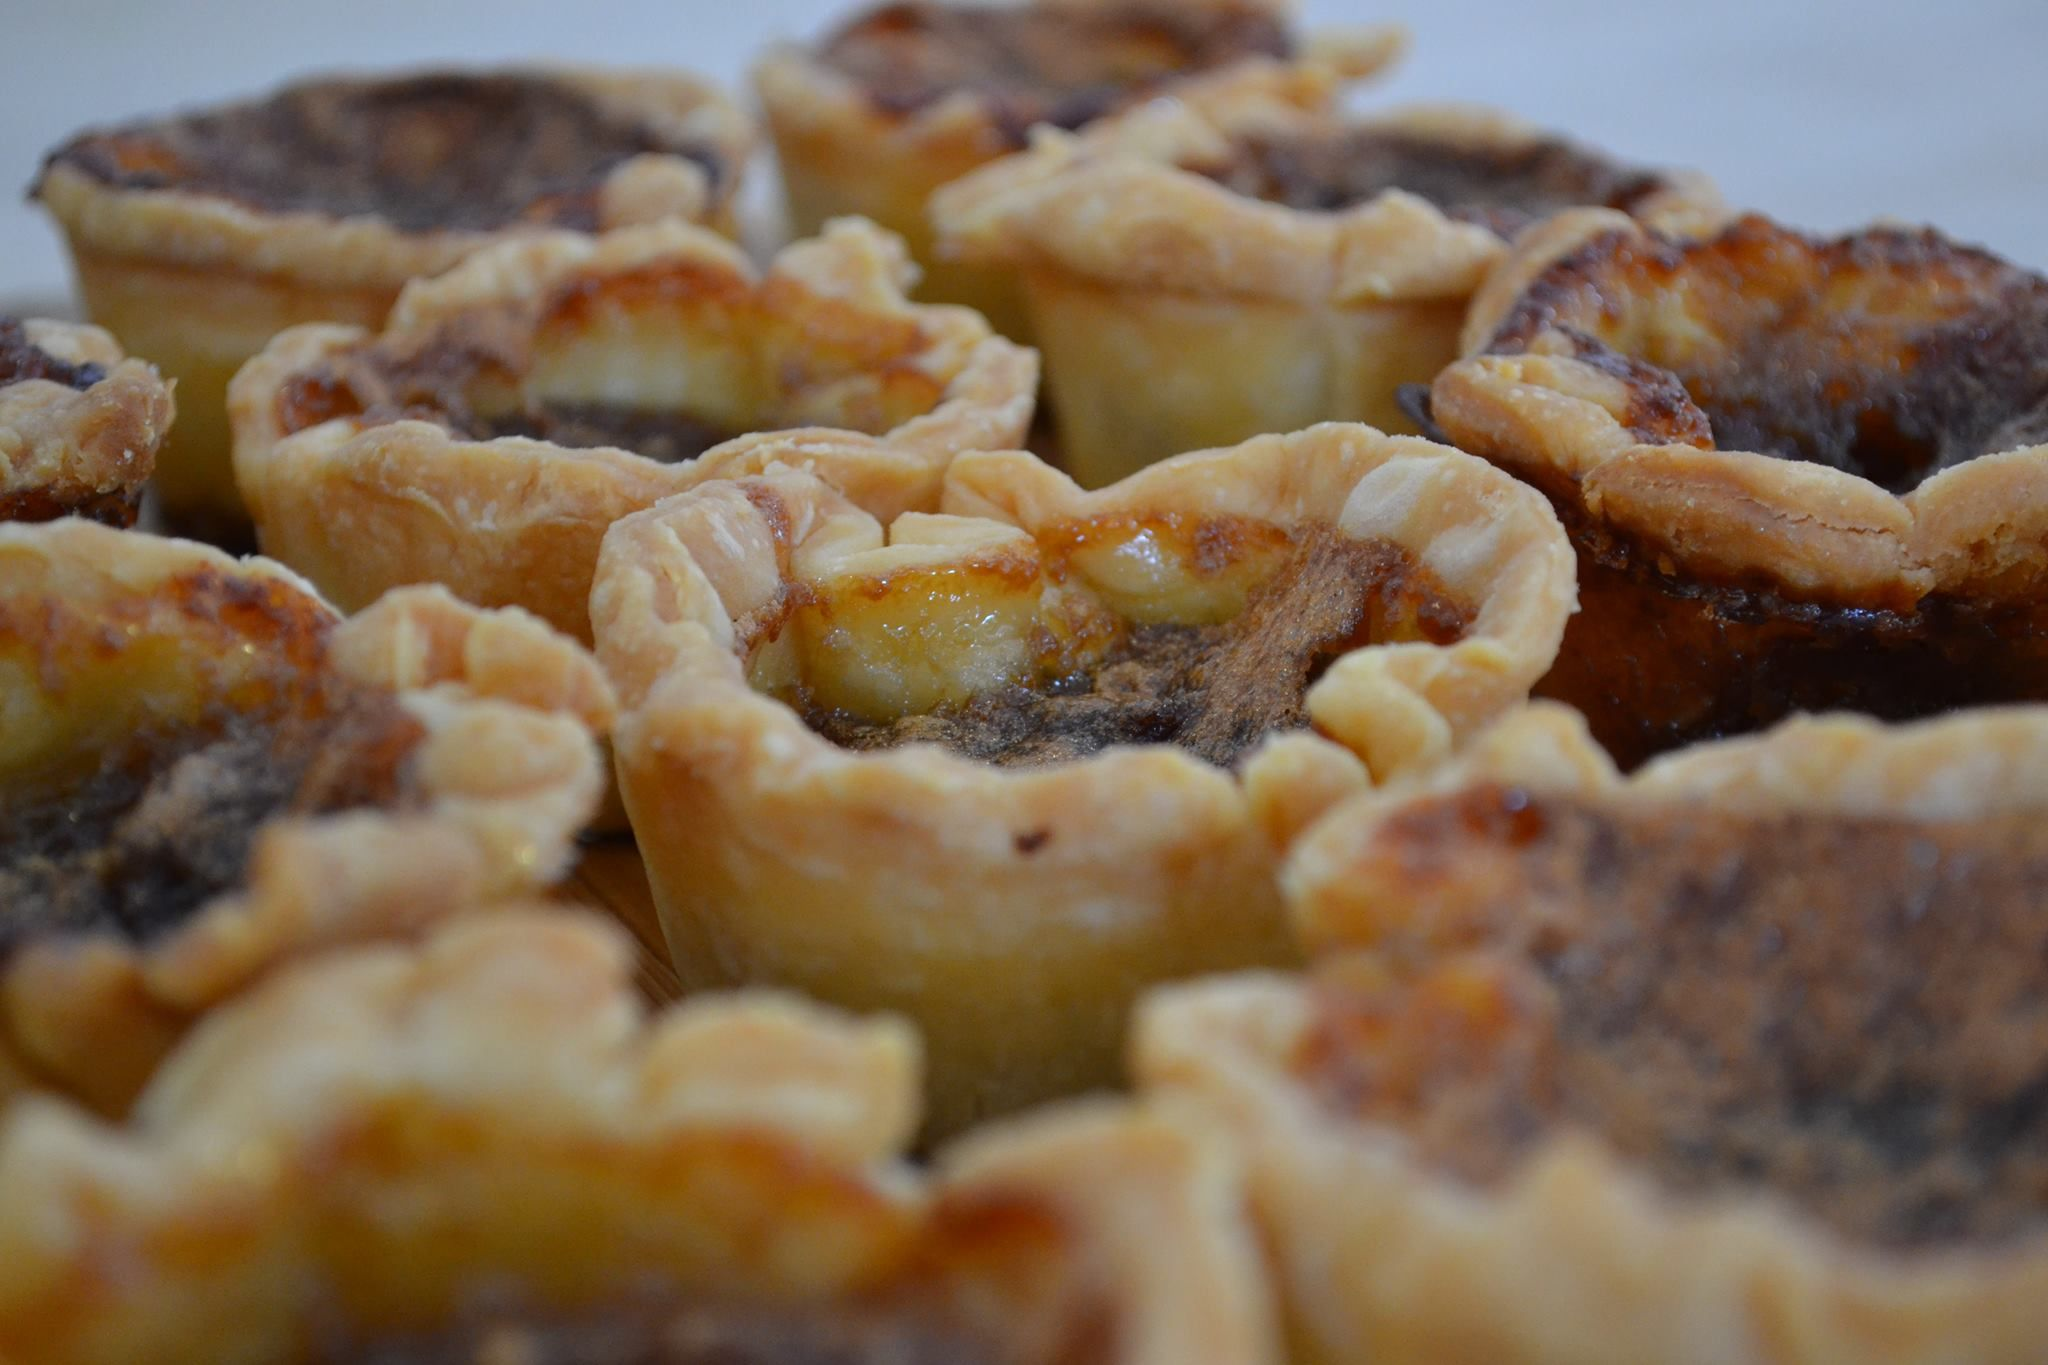 13th Bakery legendary Buttertarts. Stop in and try one